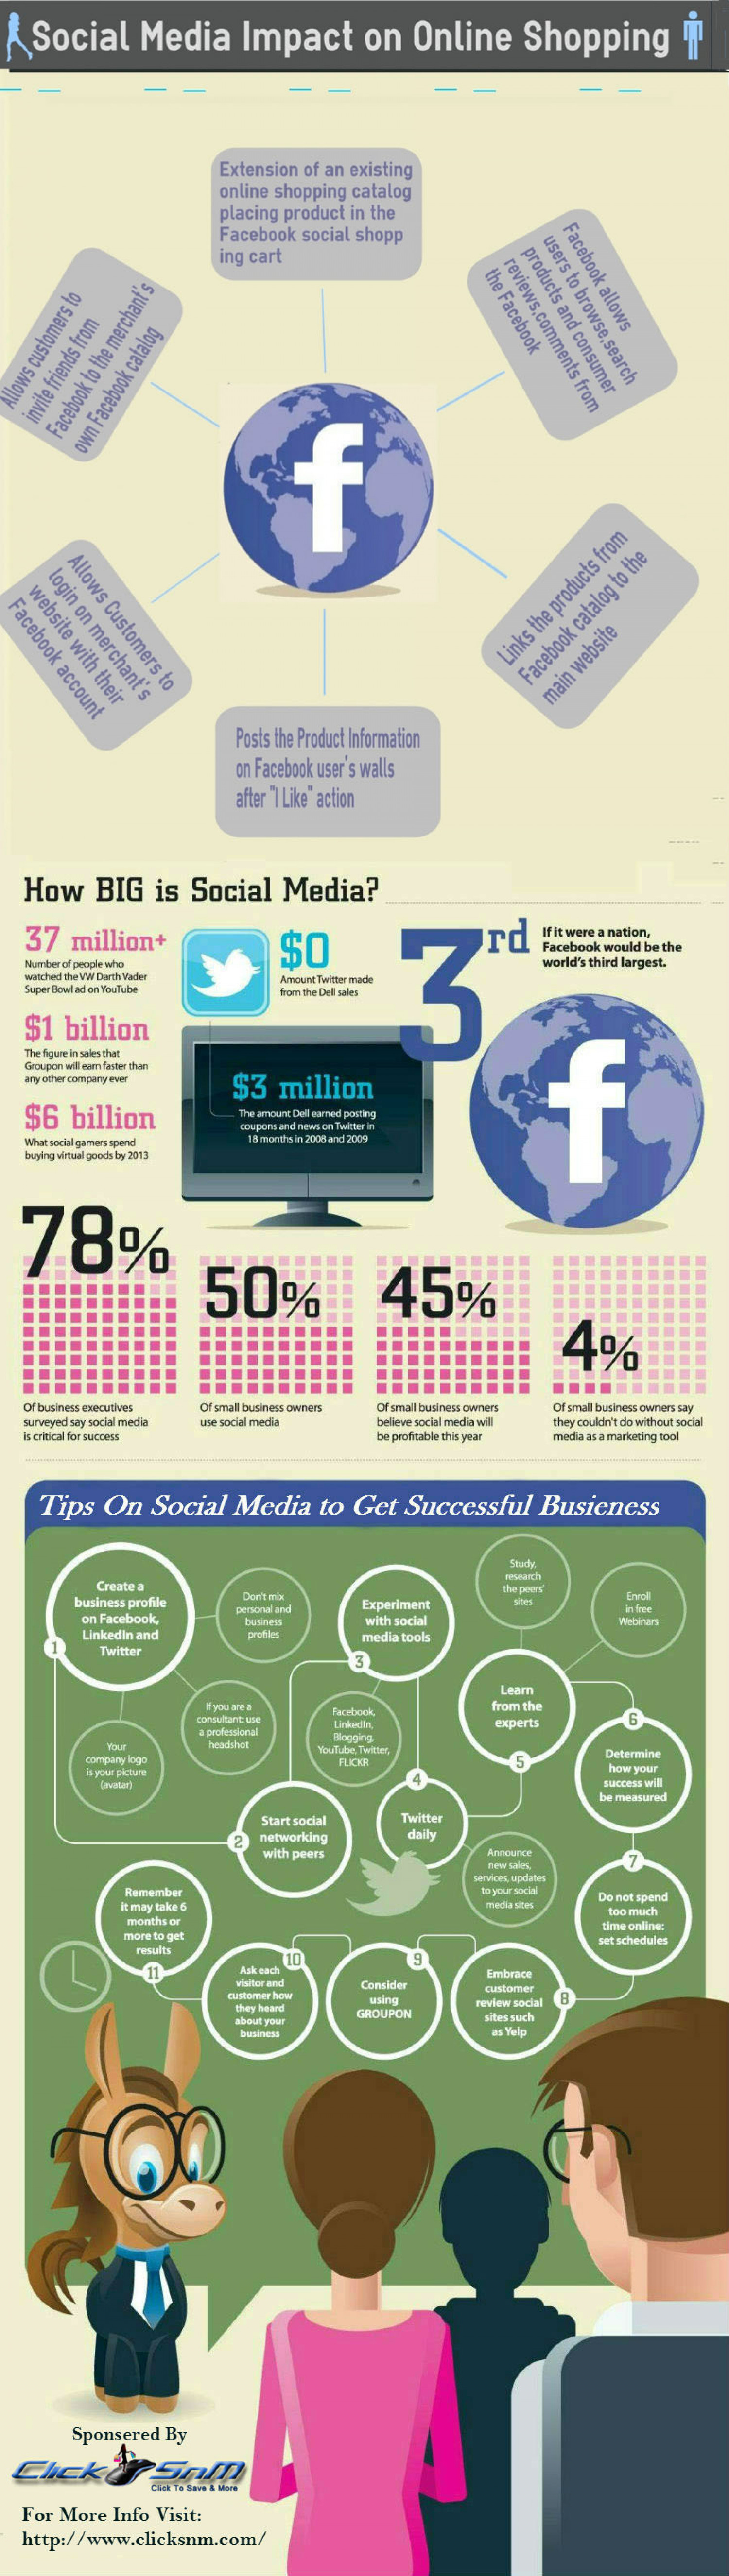 How Social Media Impact On Online Shopping Infographic